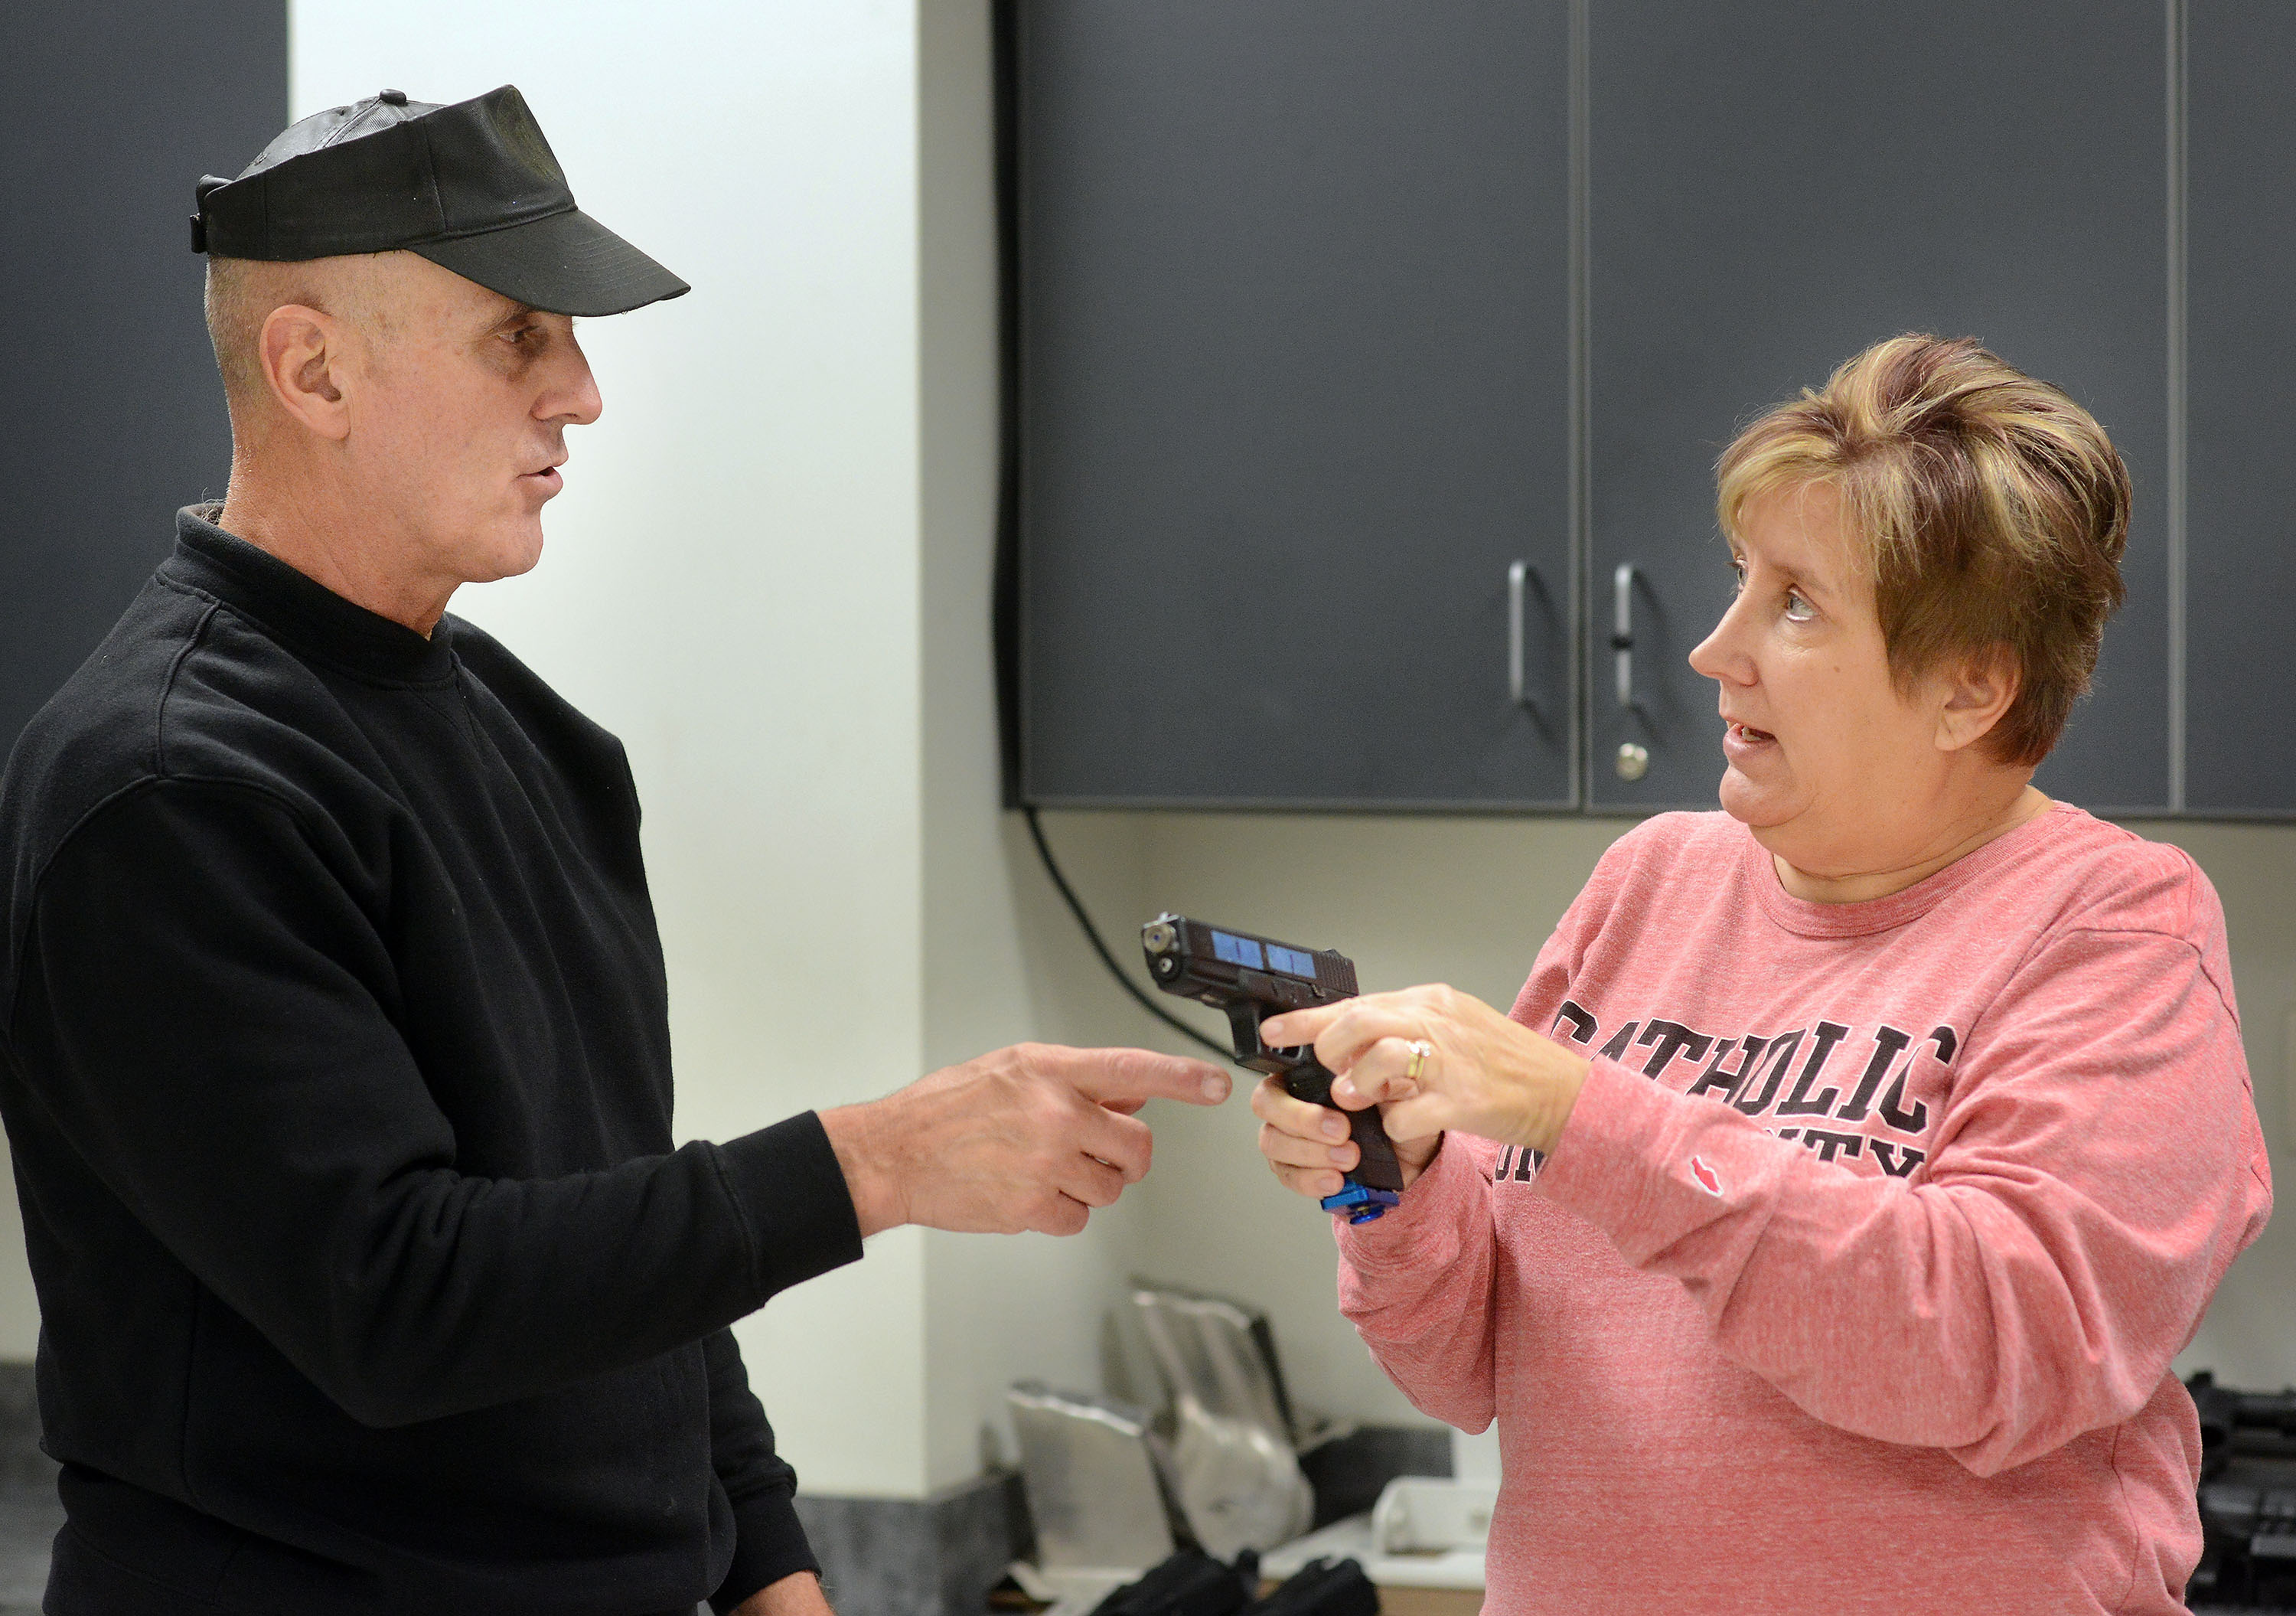 Officer Steve Dintino of East Pikeland Police (left) shows Nancy Griffith of Spring City how to shoot a Glock pistol modified for simulated training scenarios during the Citizens´ Police Academy at the Chester County Intermediate Unit in Downingtown.